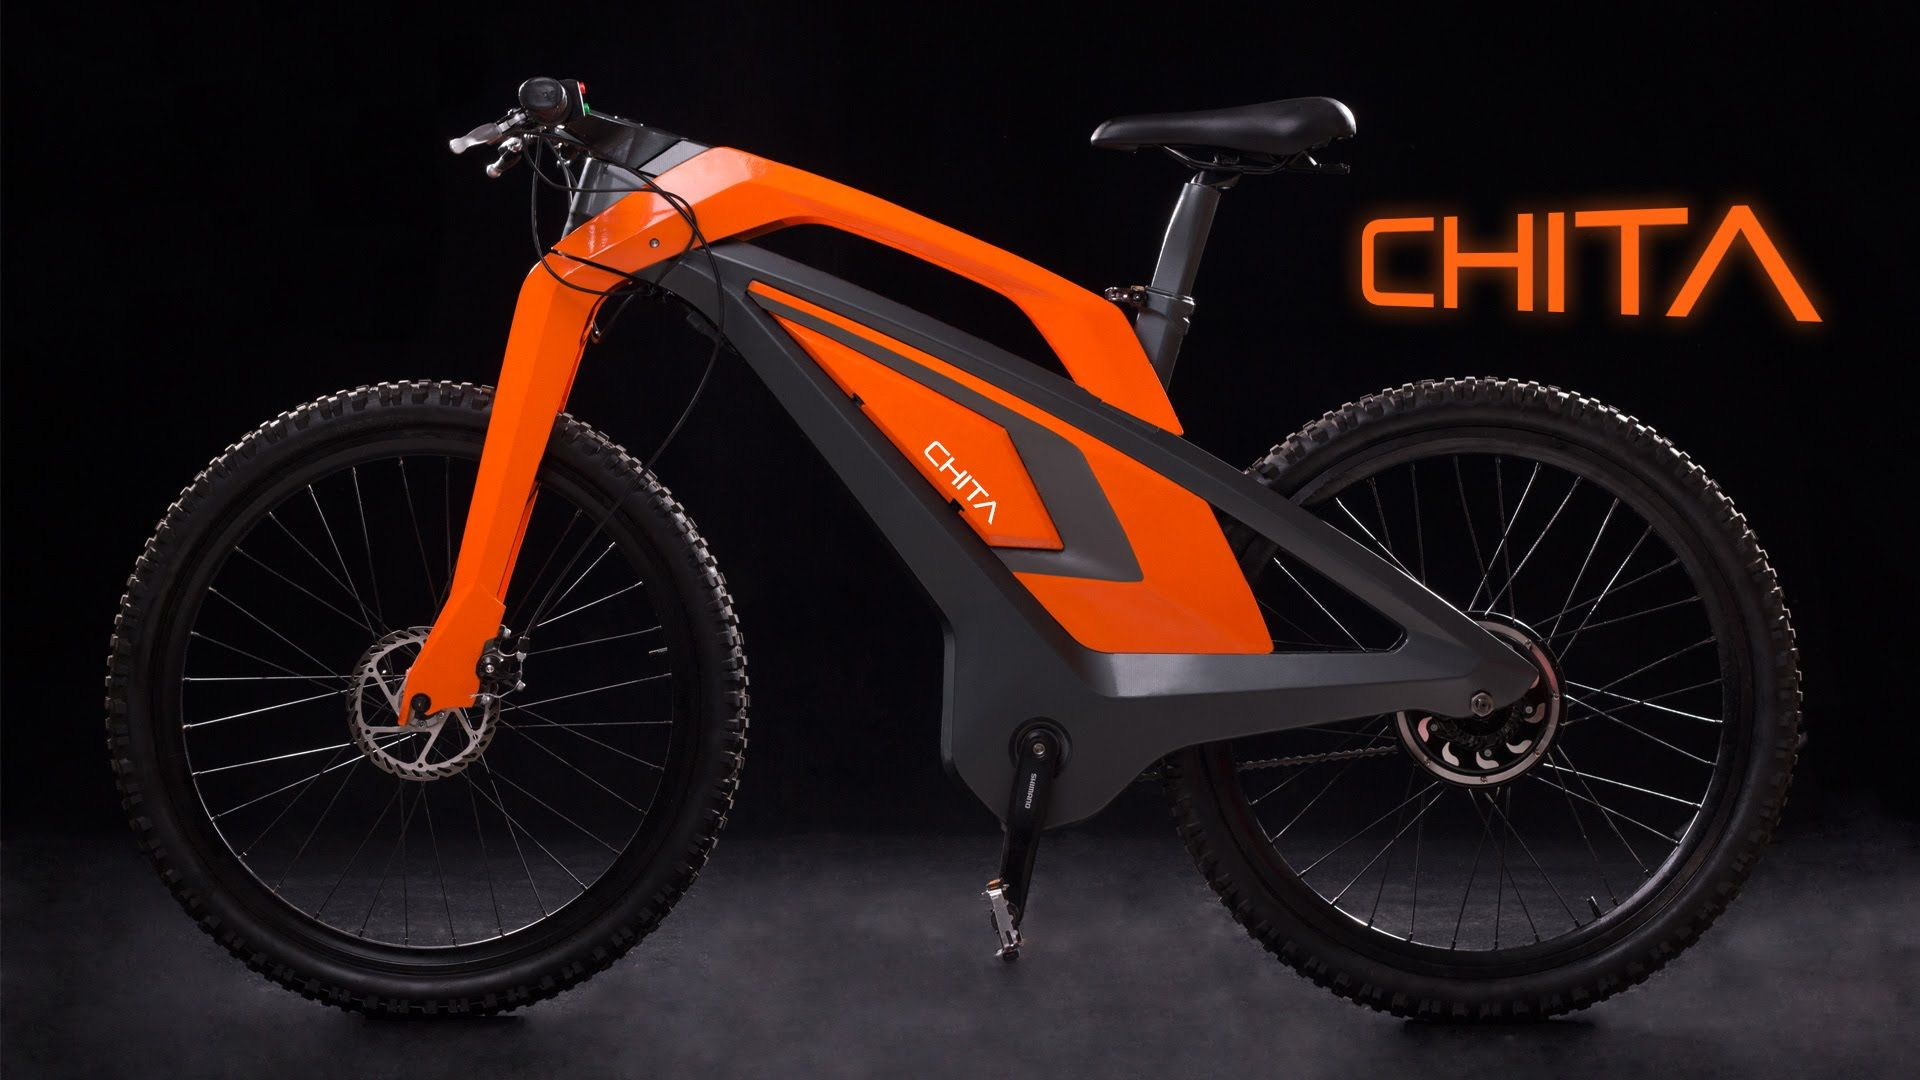 Chita The Most Affordable And First Smart Bionic Carbon Electric